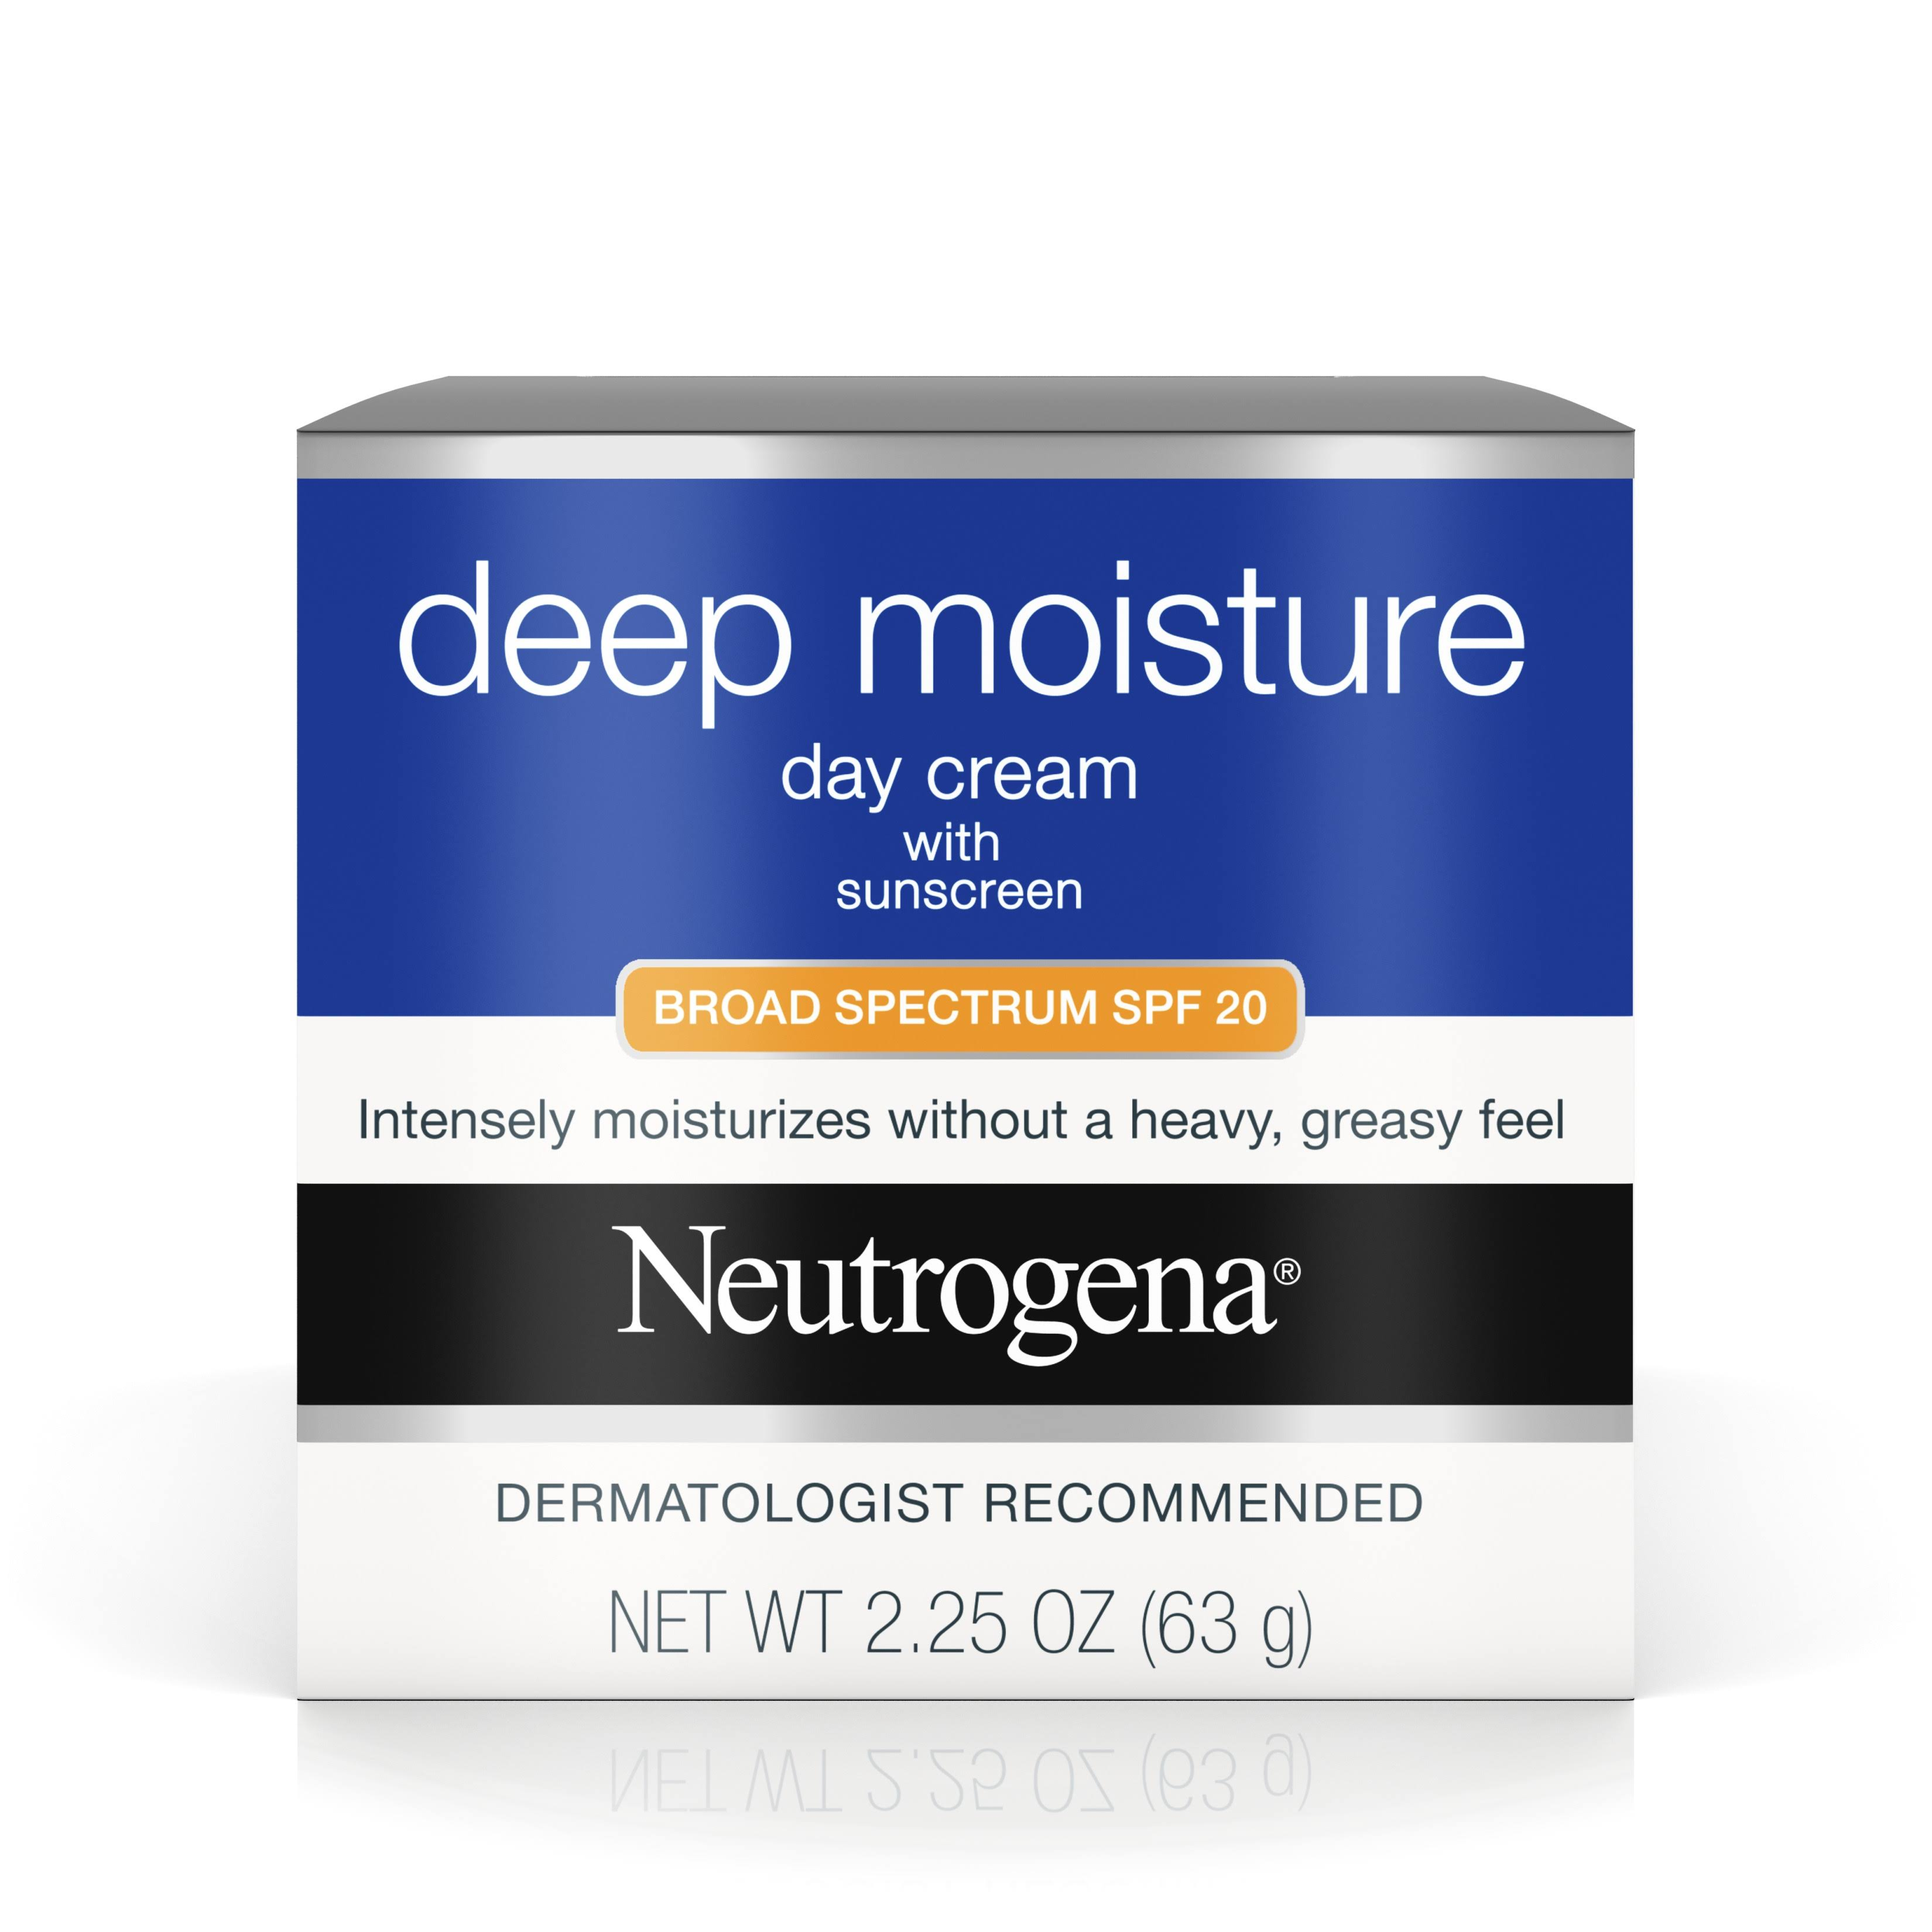 Neutrogena Deep Moisture Day Cream - SPF20, 2.25oz